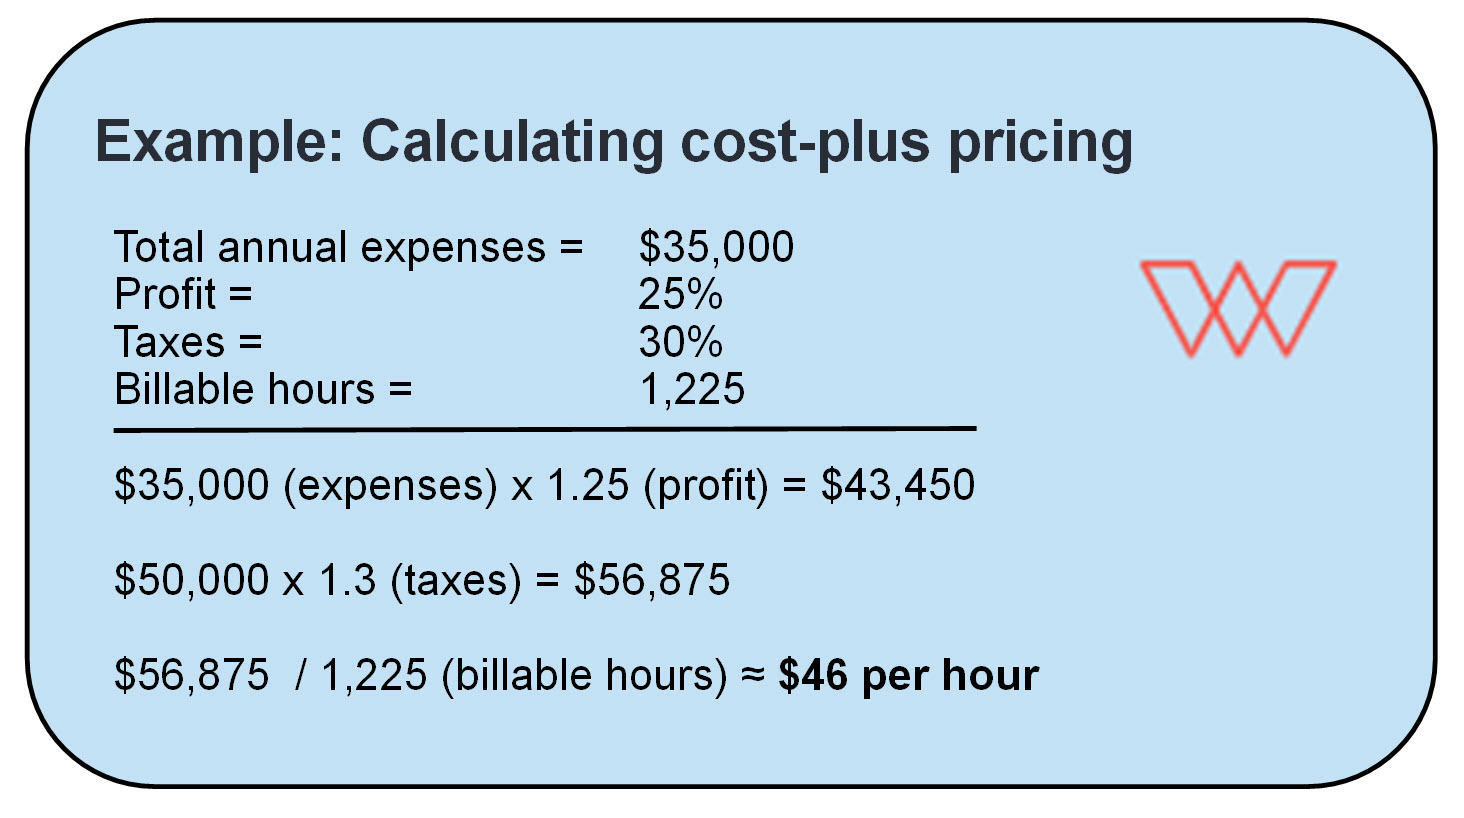 A sample calculation of the cost plus pricing model